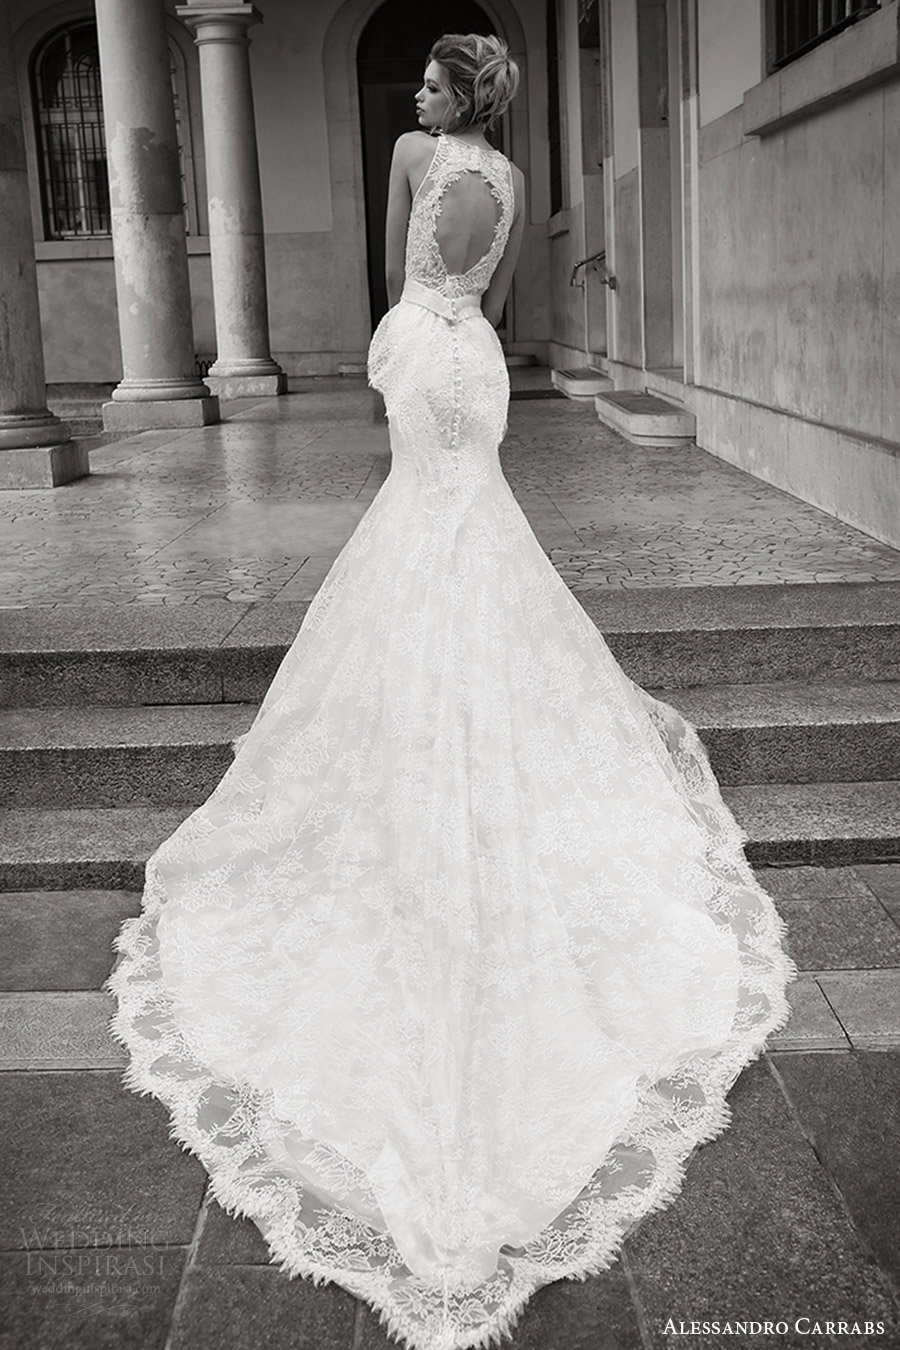 alessandro carrabs 2016 wedding dresses palcoscenico